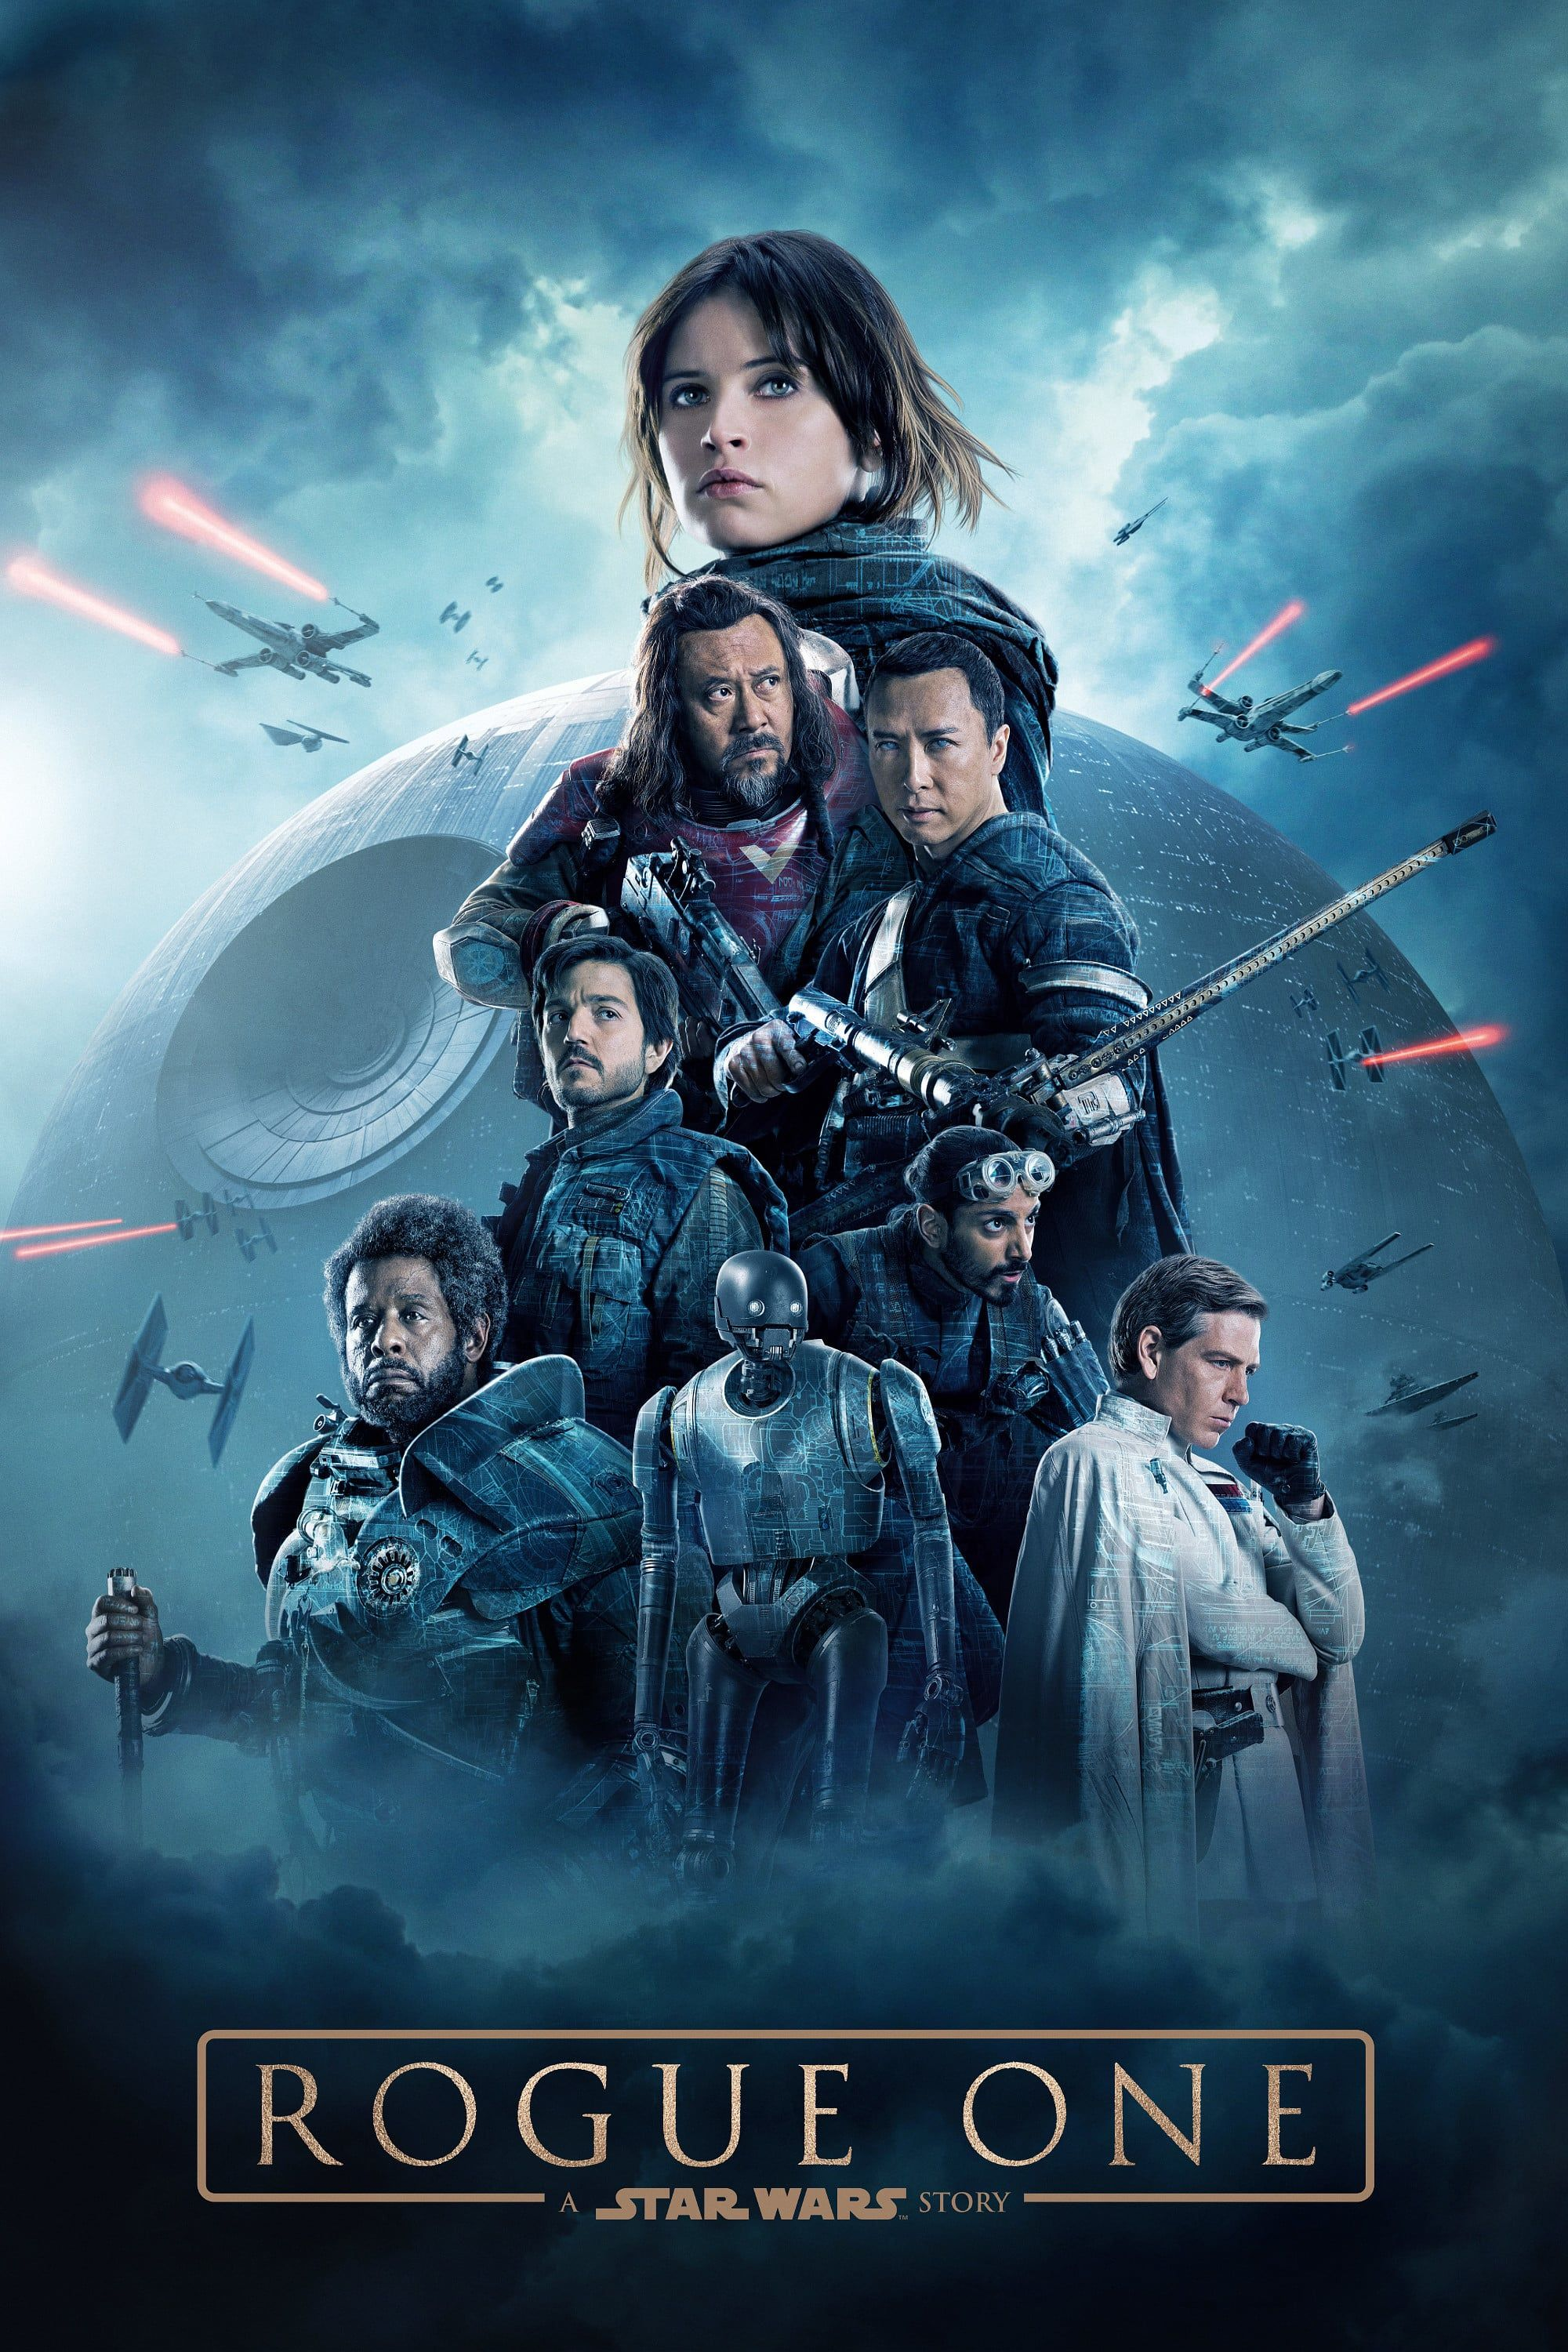 Rogue One A Star Wars Story 2016 Full Movie Blu Ray Quality Enjoy Full Movie Click Link Be Star Wars Movies Posters Star Wars Poster Rogue One Star Wars